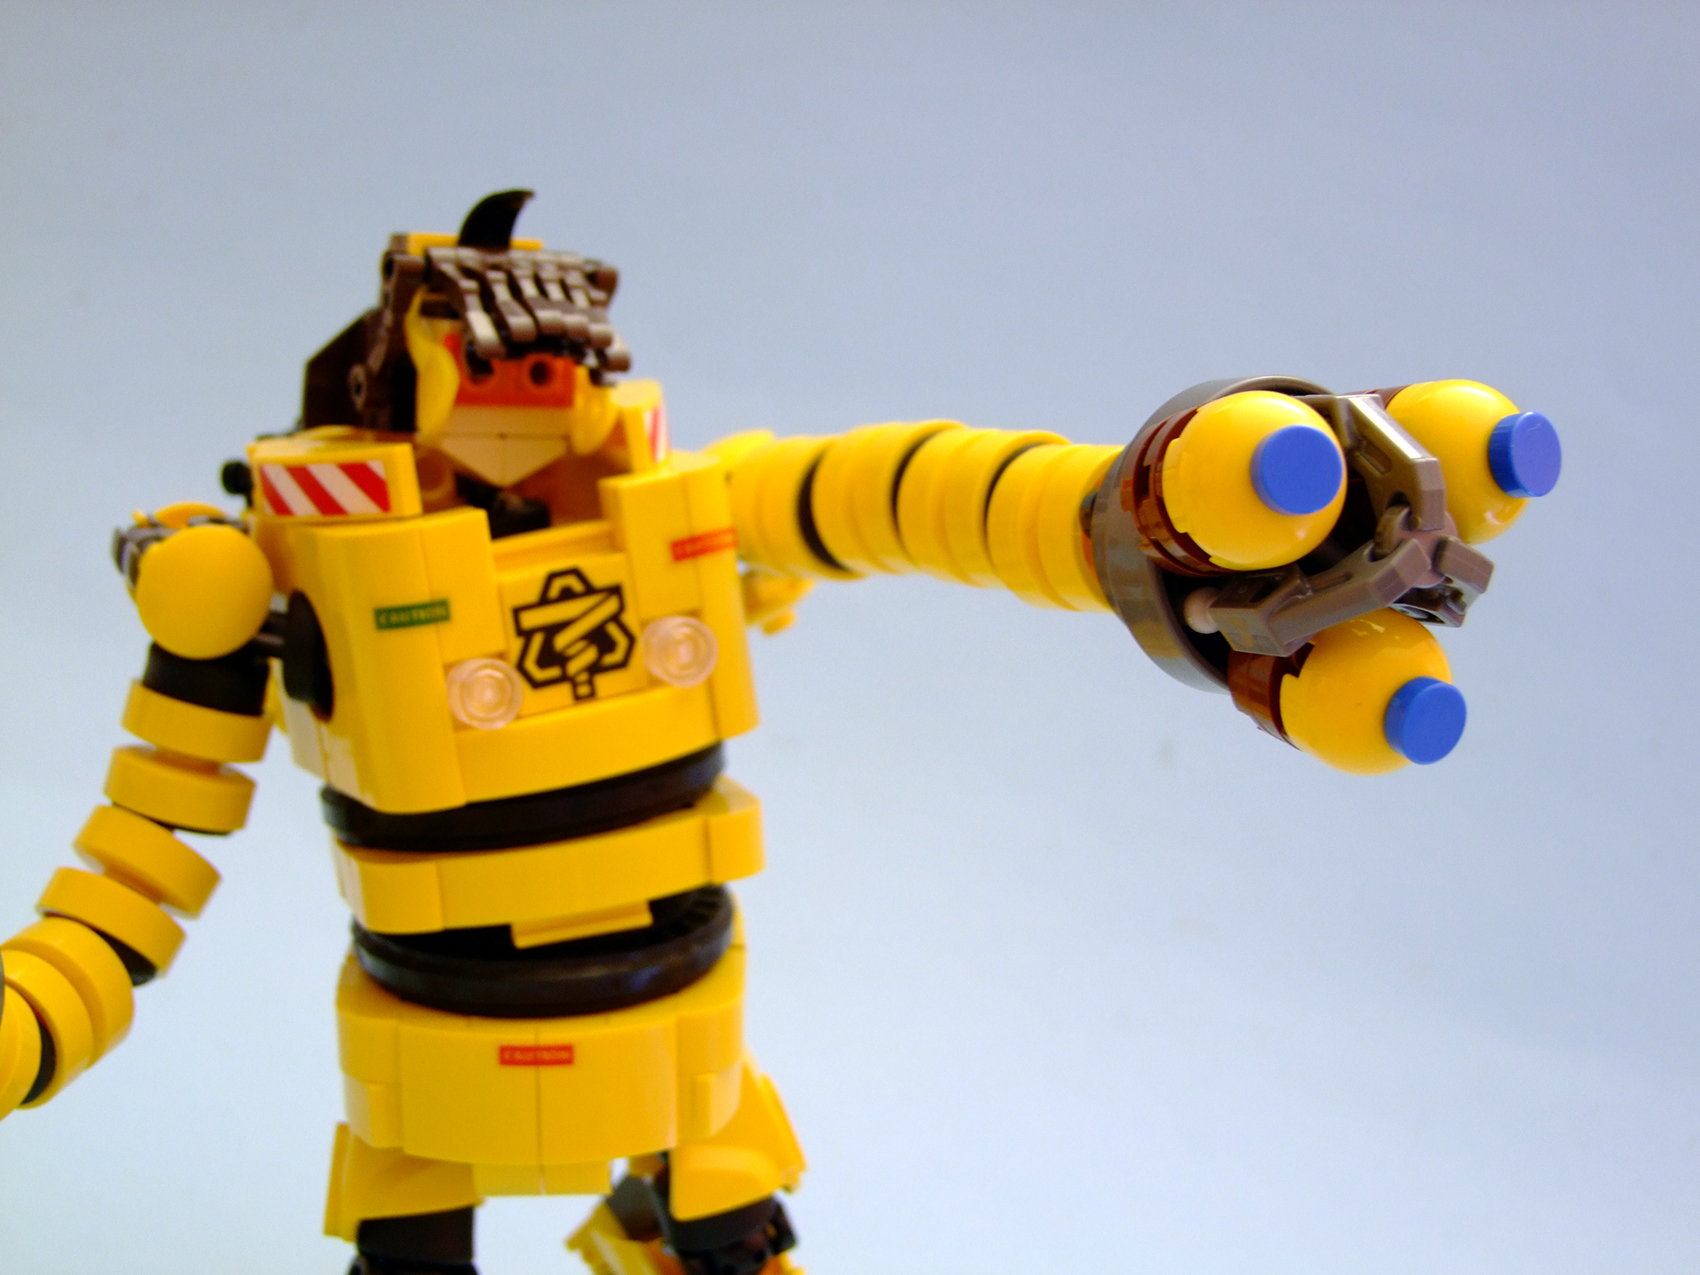 mechanica arms